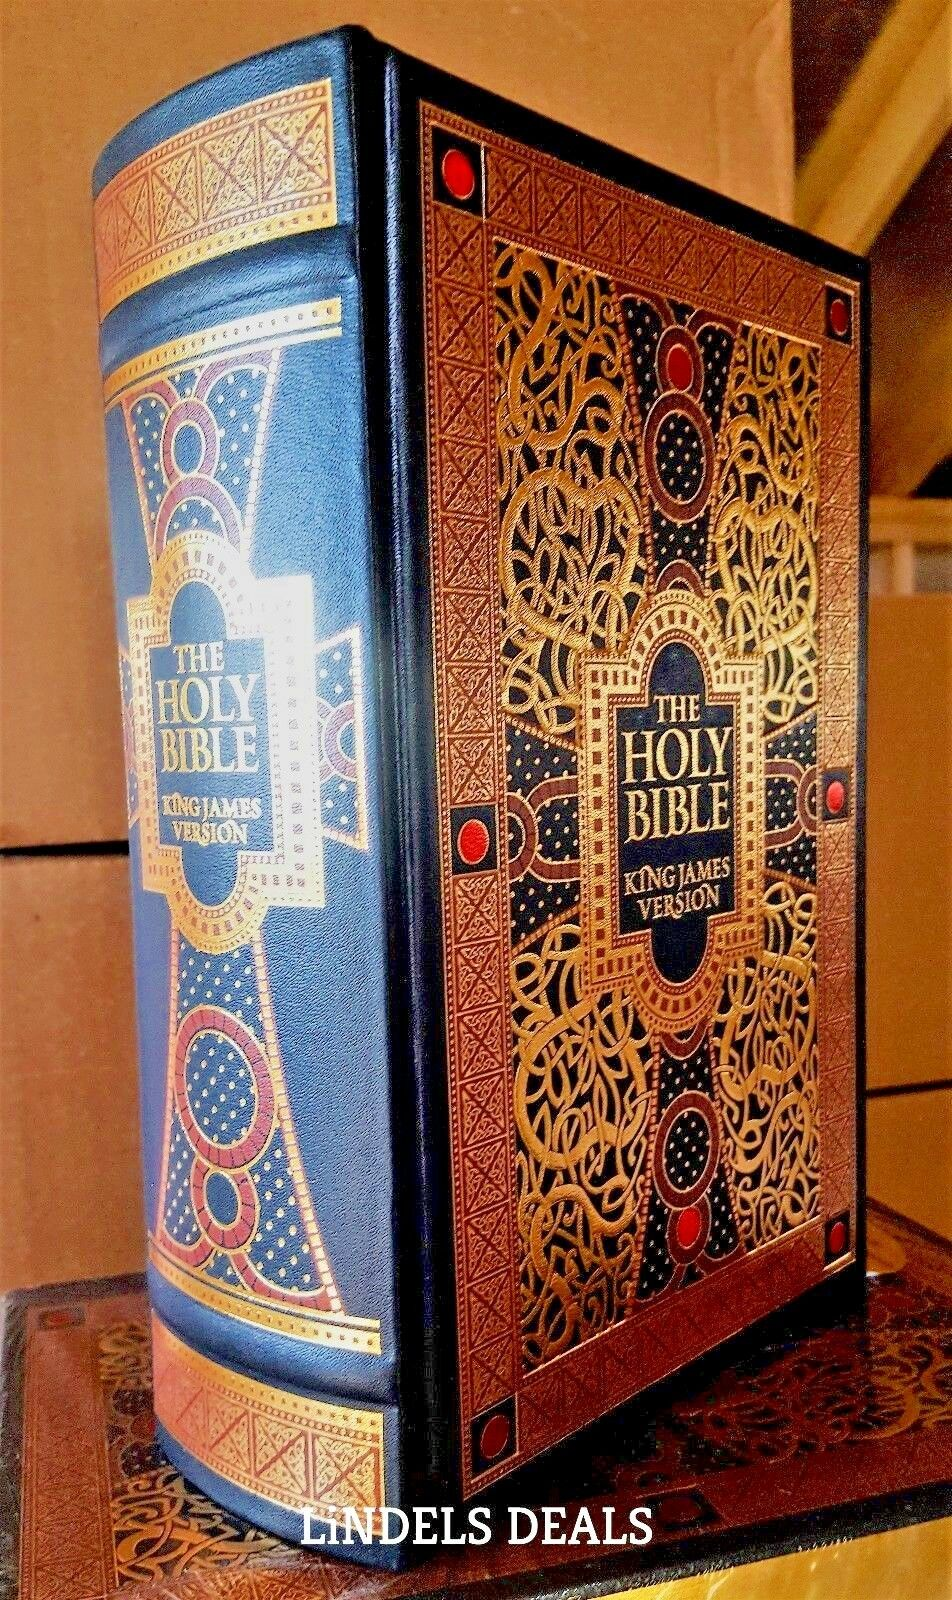 The Holy Bible King James Version Gustave Dore Illustrated Leather Bound